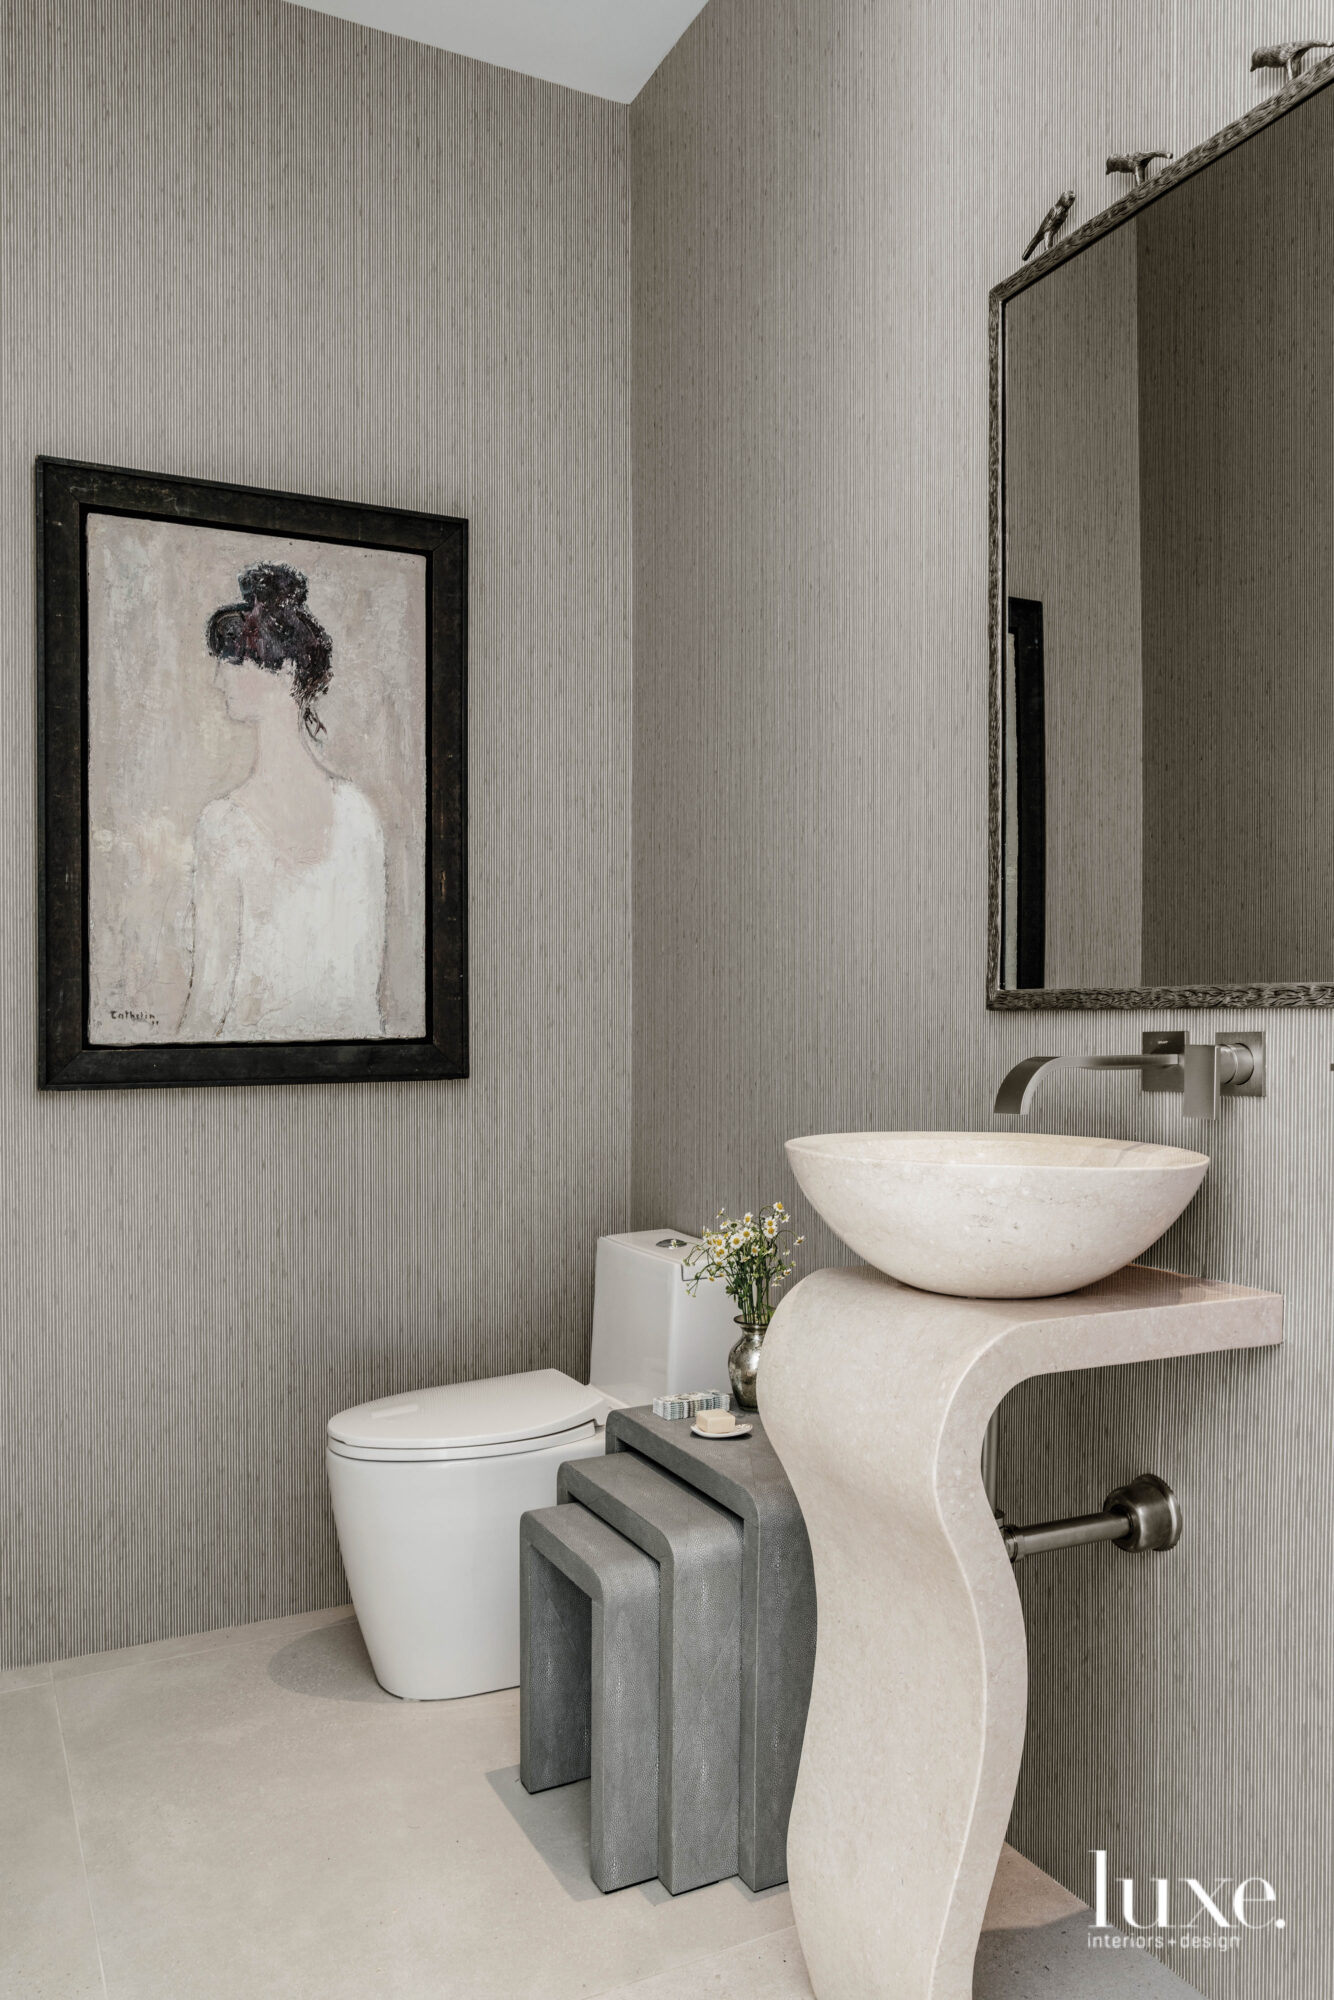 Powder room with sculptural sink.